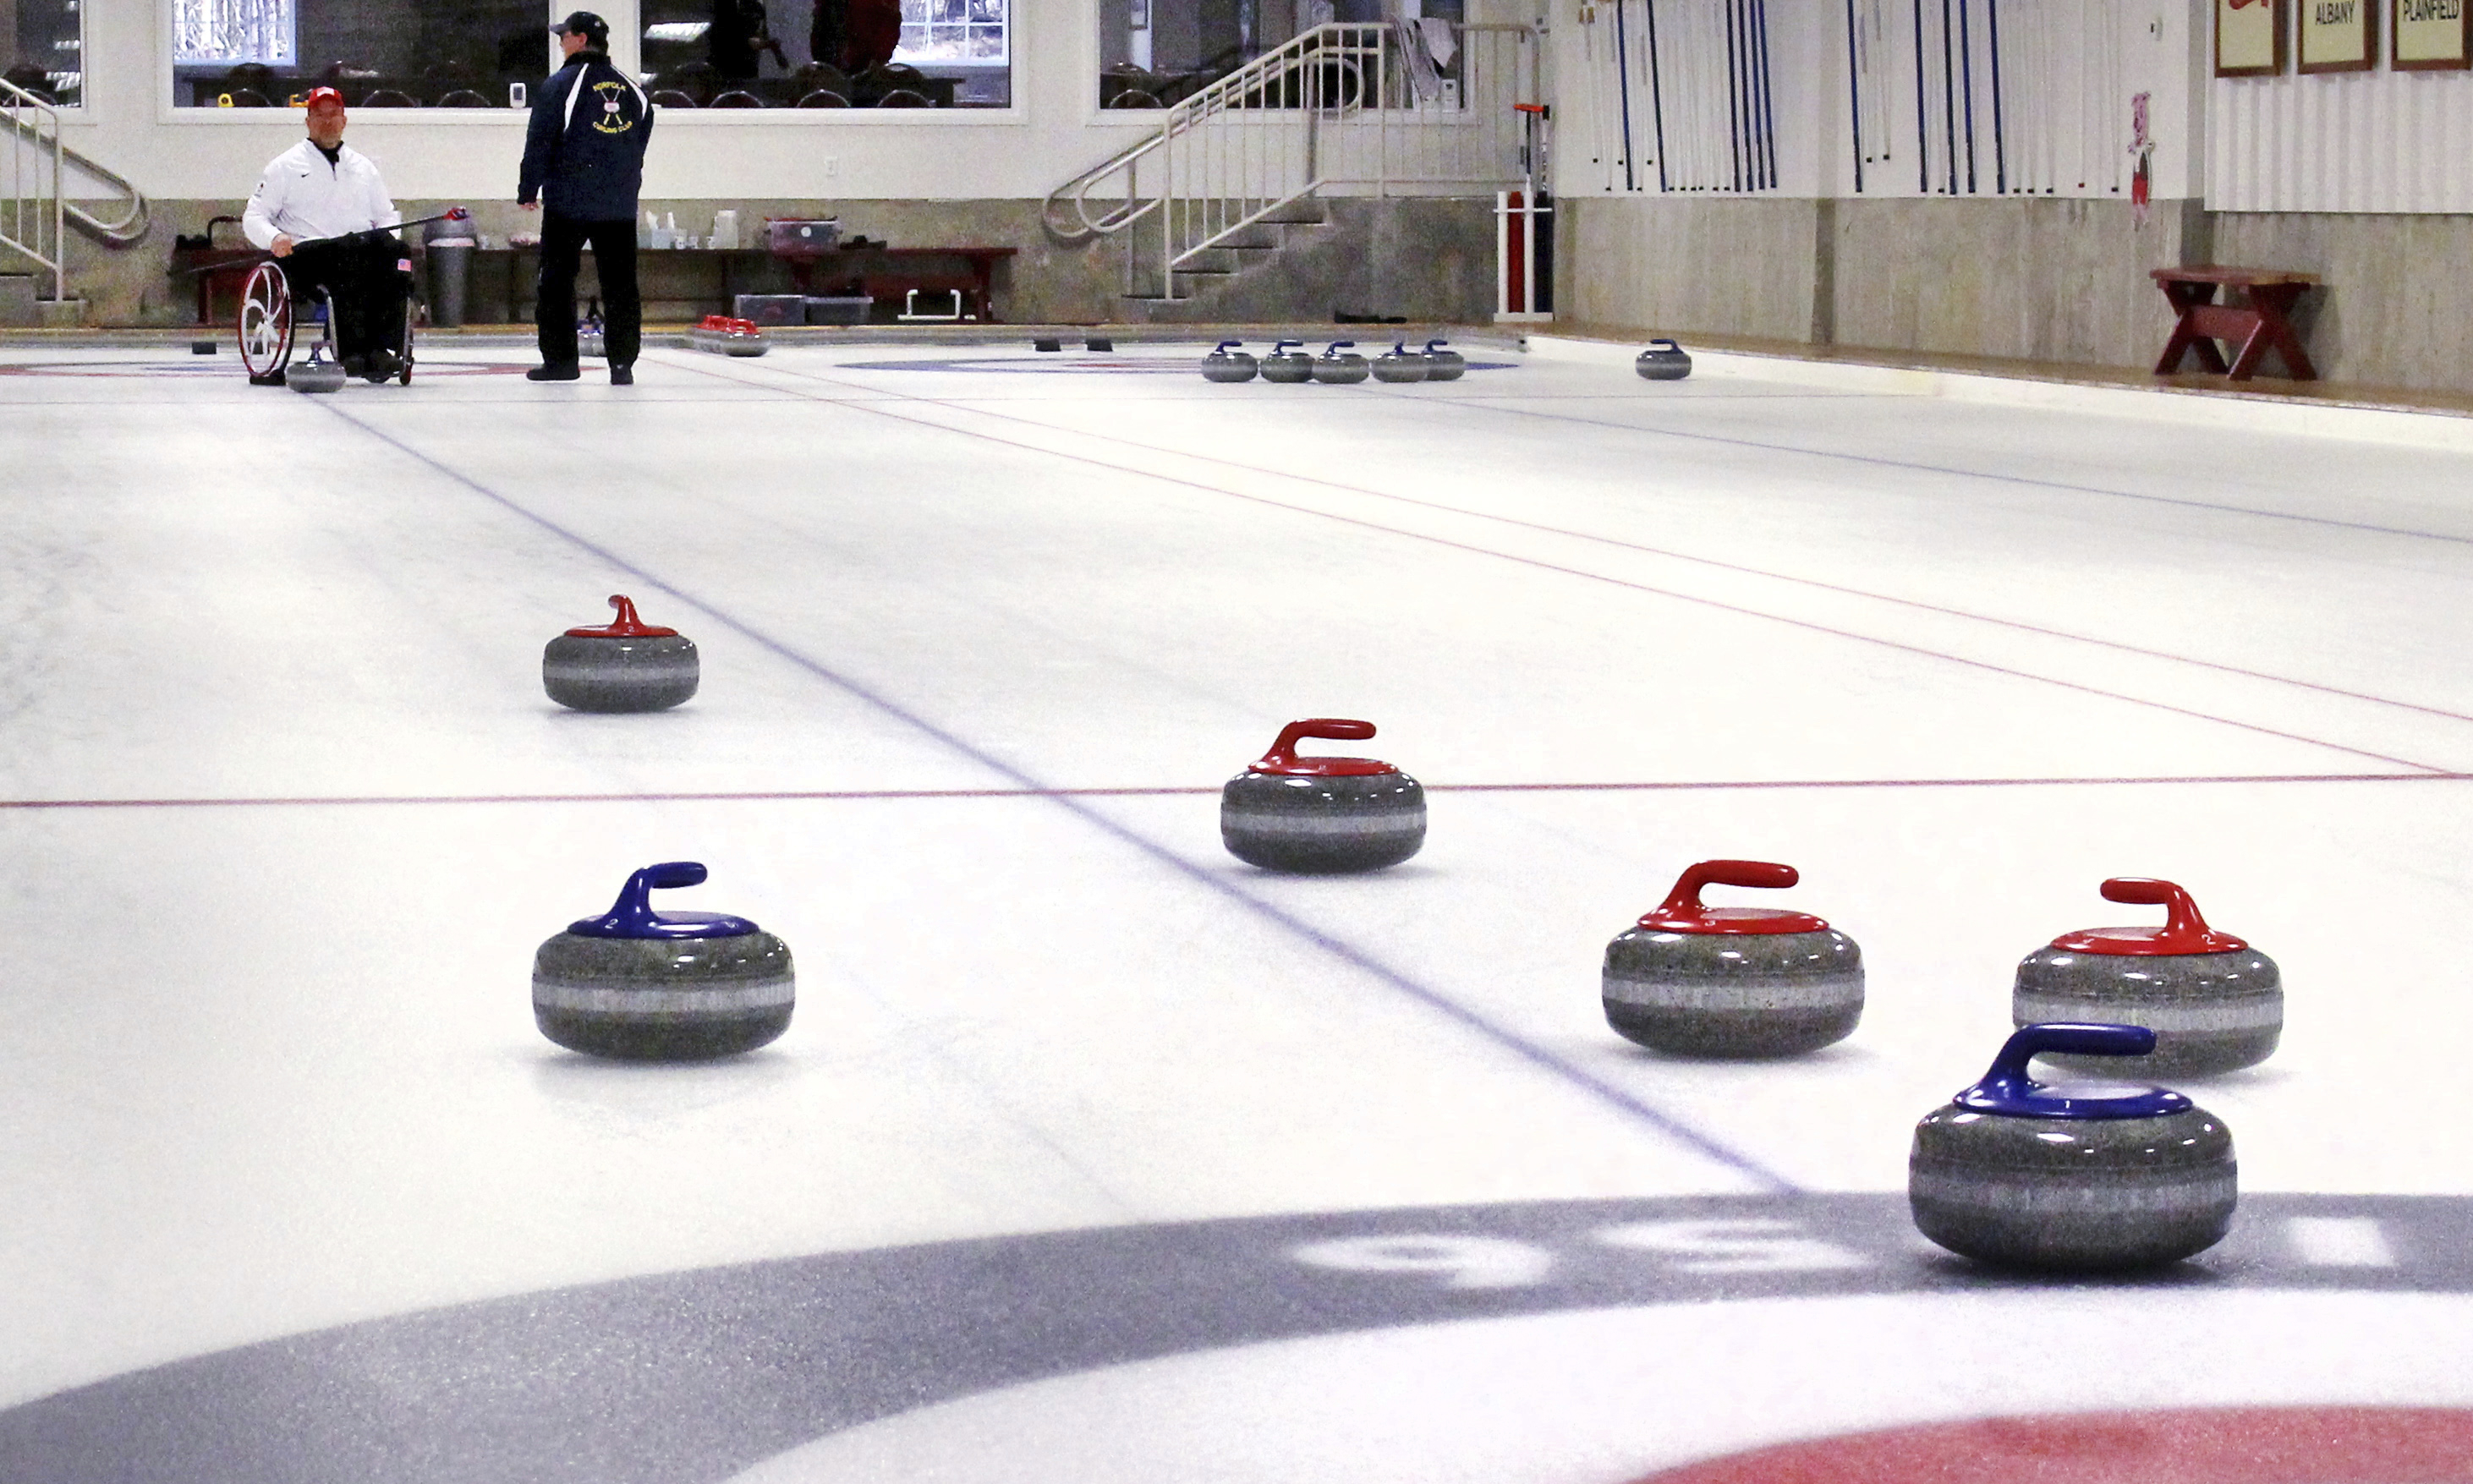 Curling stones rest on the field of play as former Connecticut basketball player Steve Emt practices at the Norfolk Curling Club in Norfolk, Conn., Feb. 21, 2018.